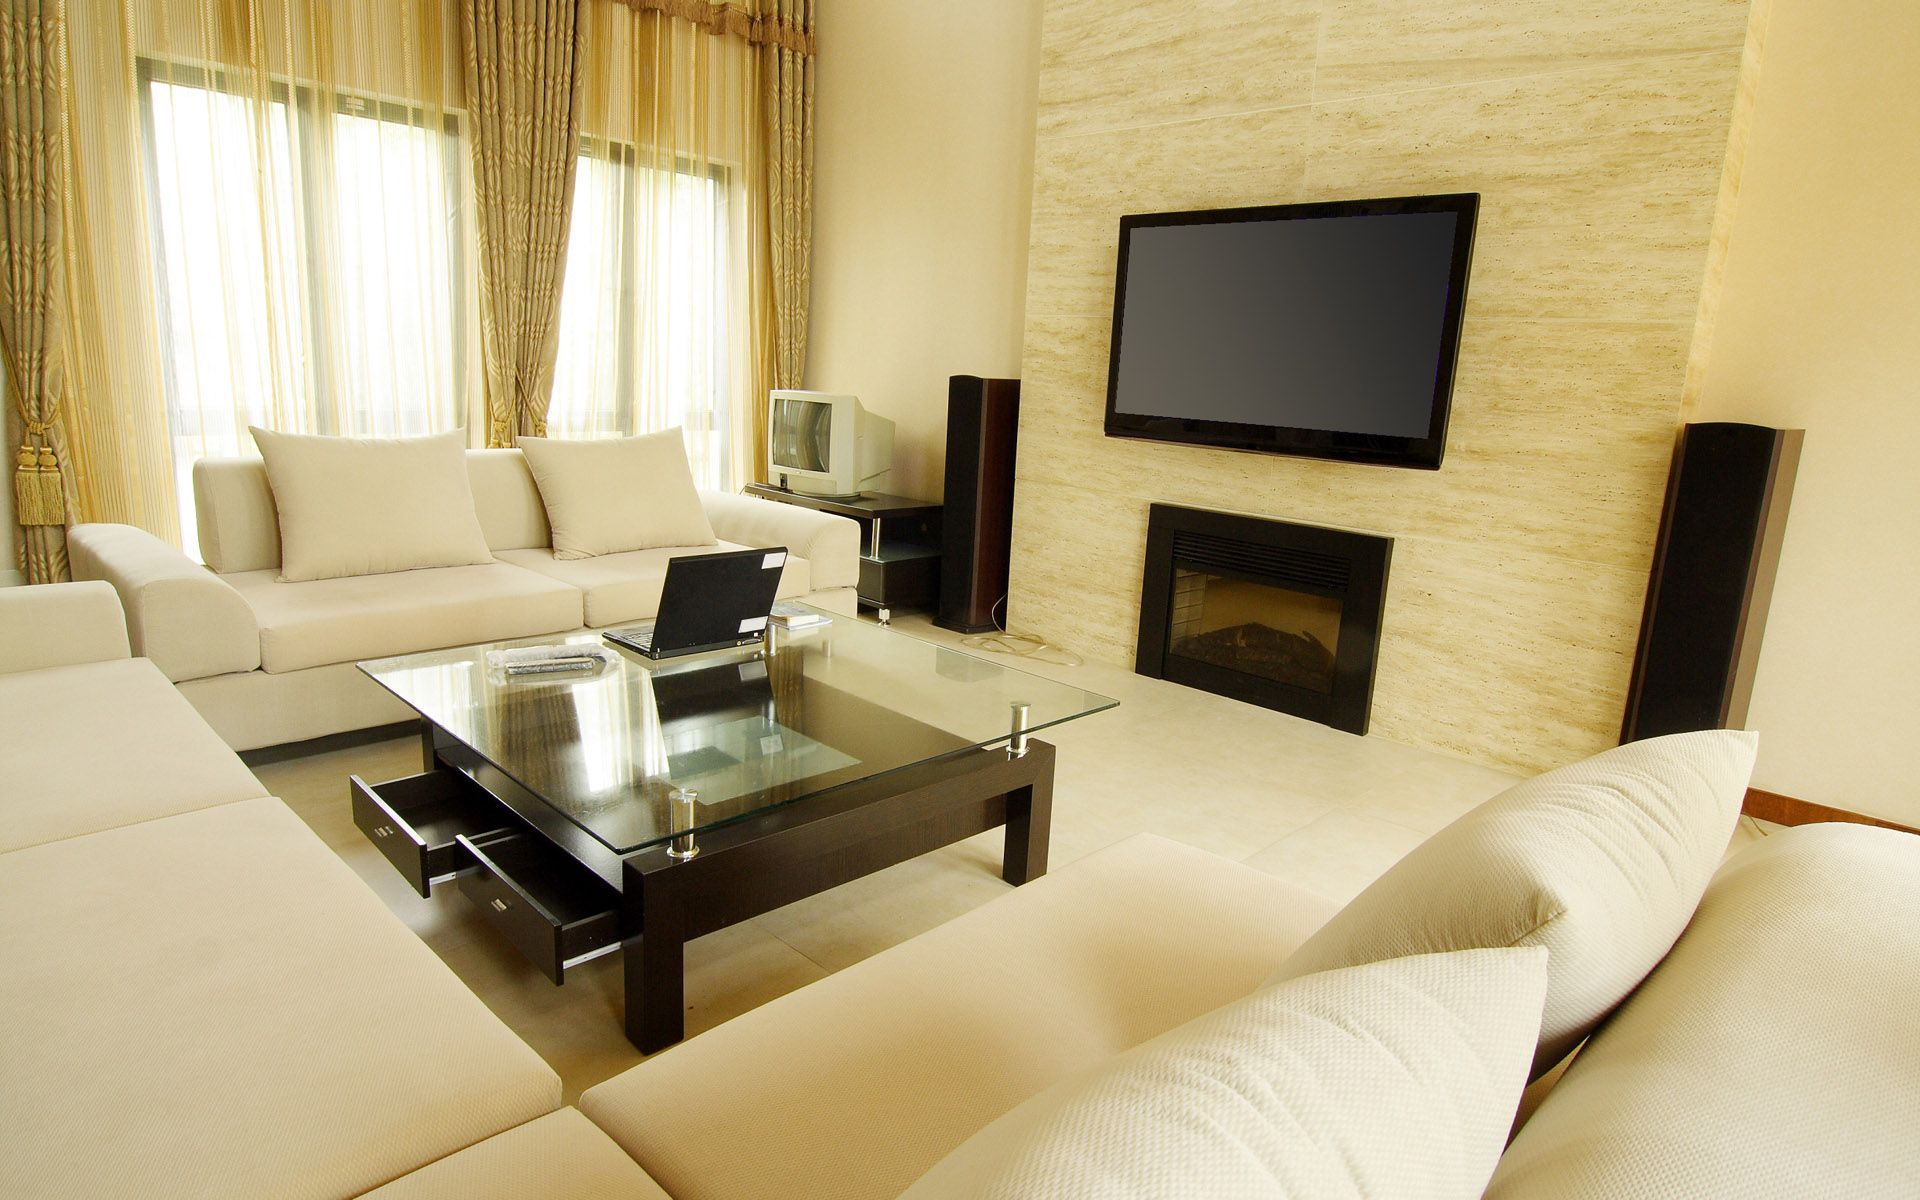 wallpaper for living room ideas - Google Search | Stuff to Buy ...